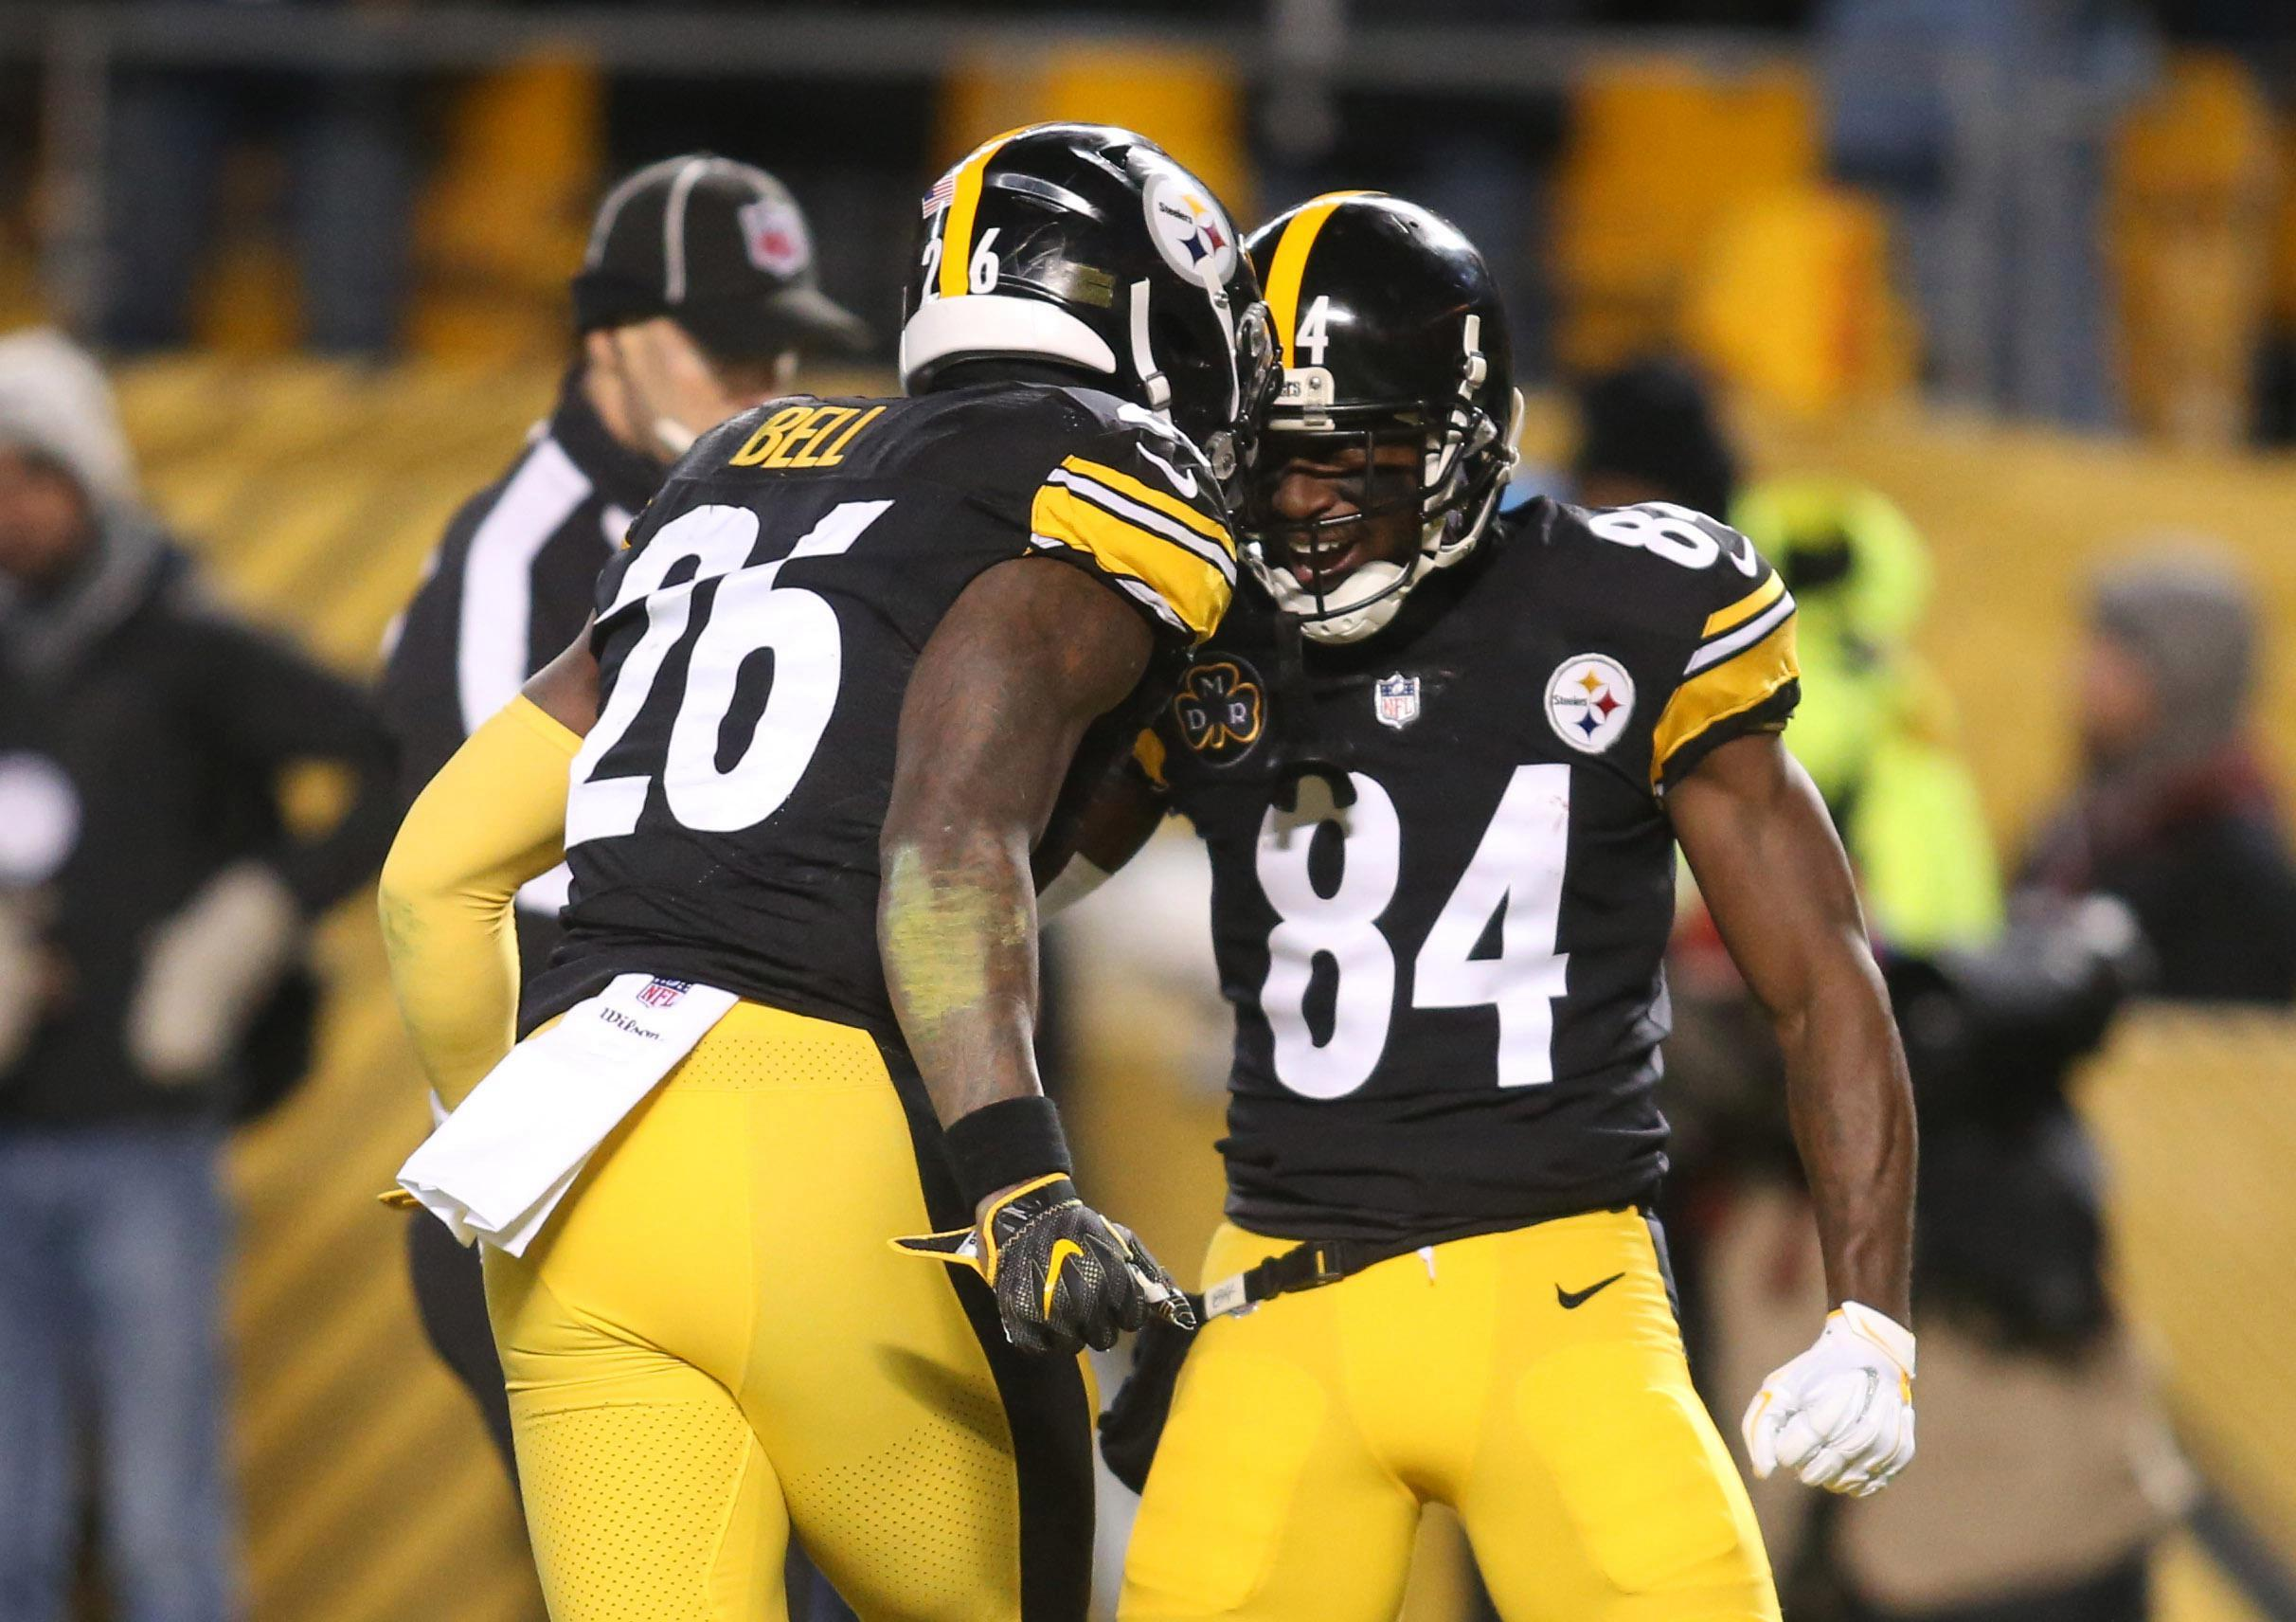 Jacksonville Jaguars vs Pittsburgh Steelers: Pressure on 'Killer Bs' to finally deliver as they look to banish Jags demons